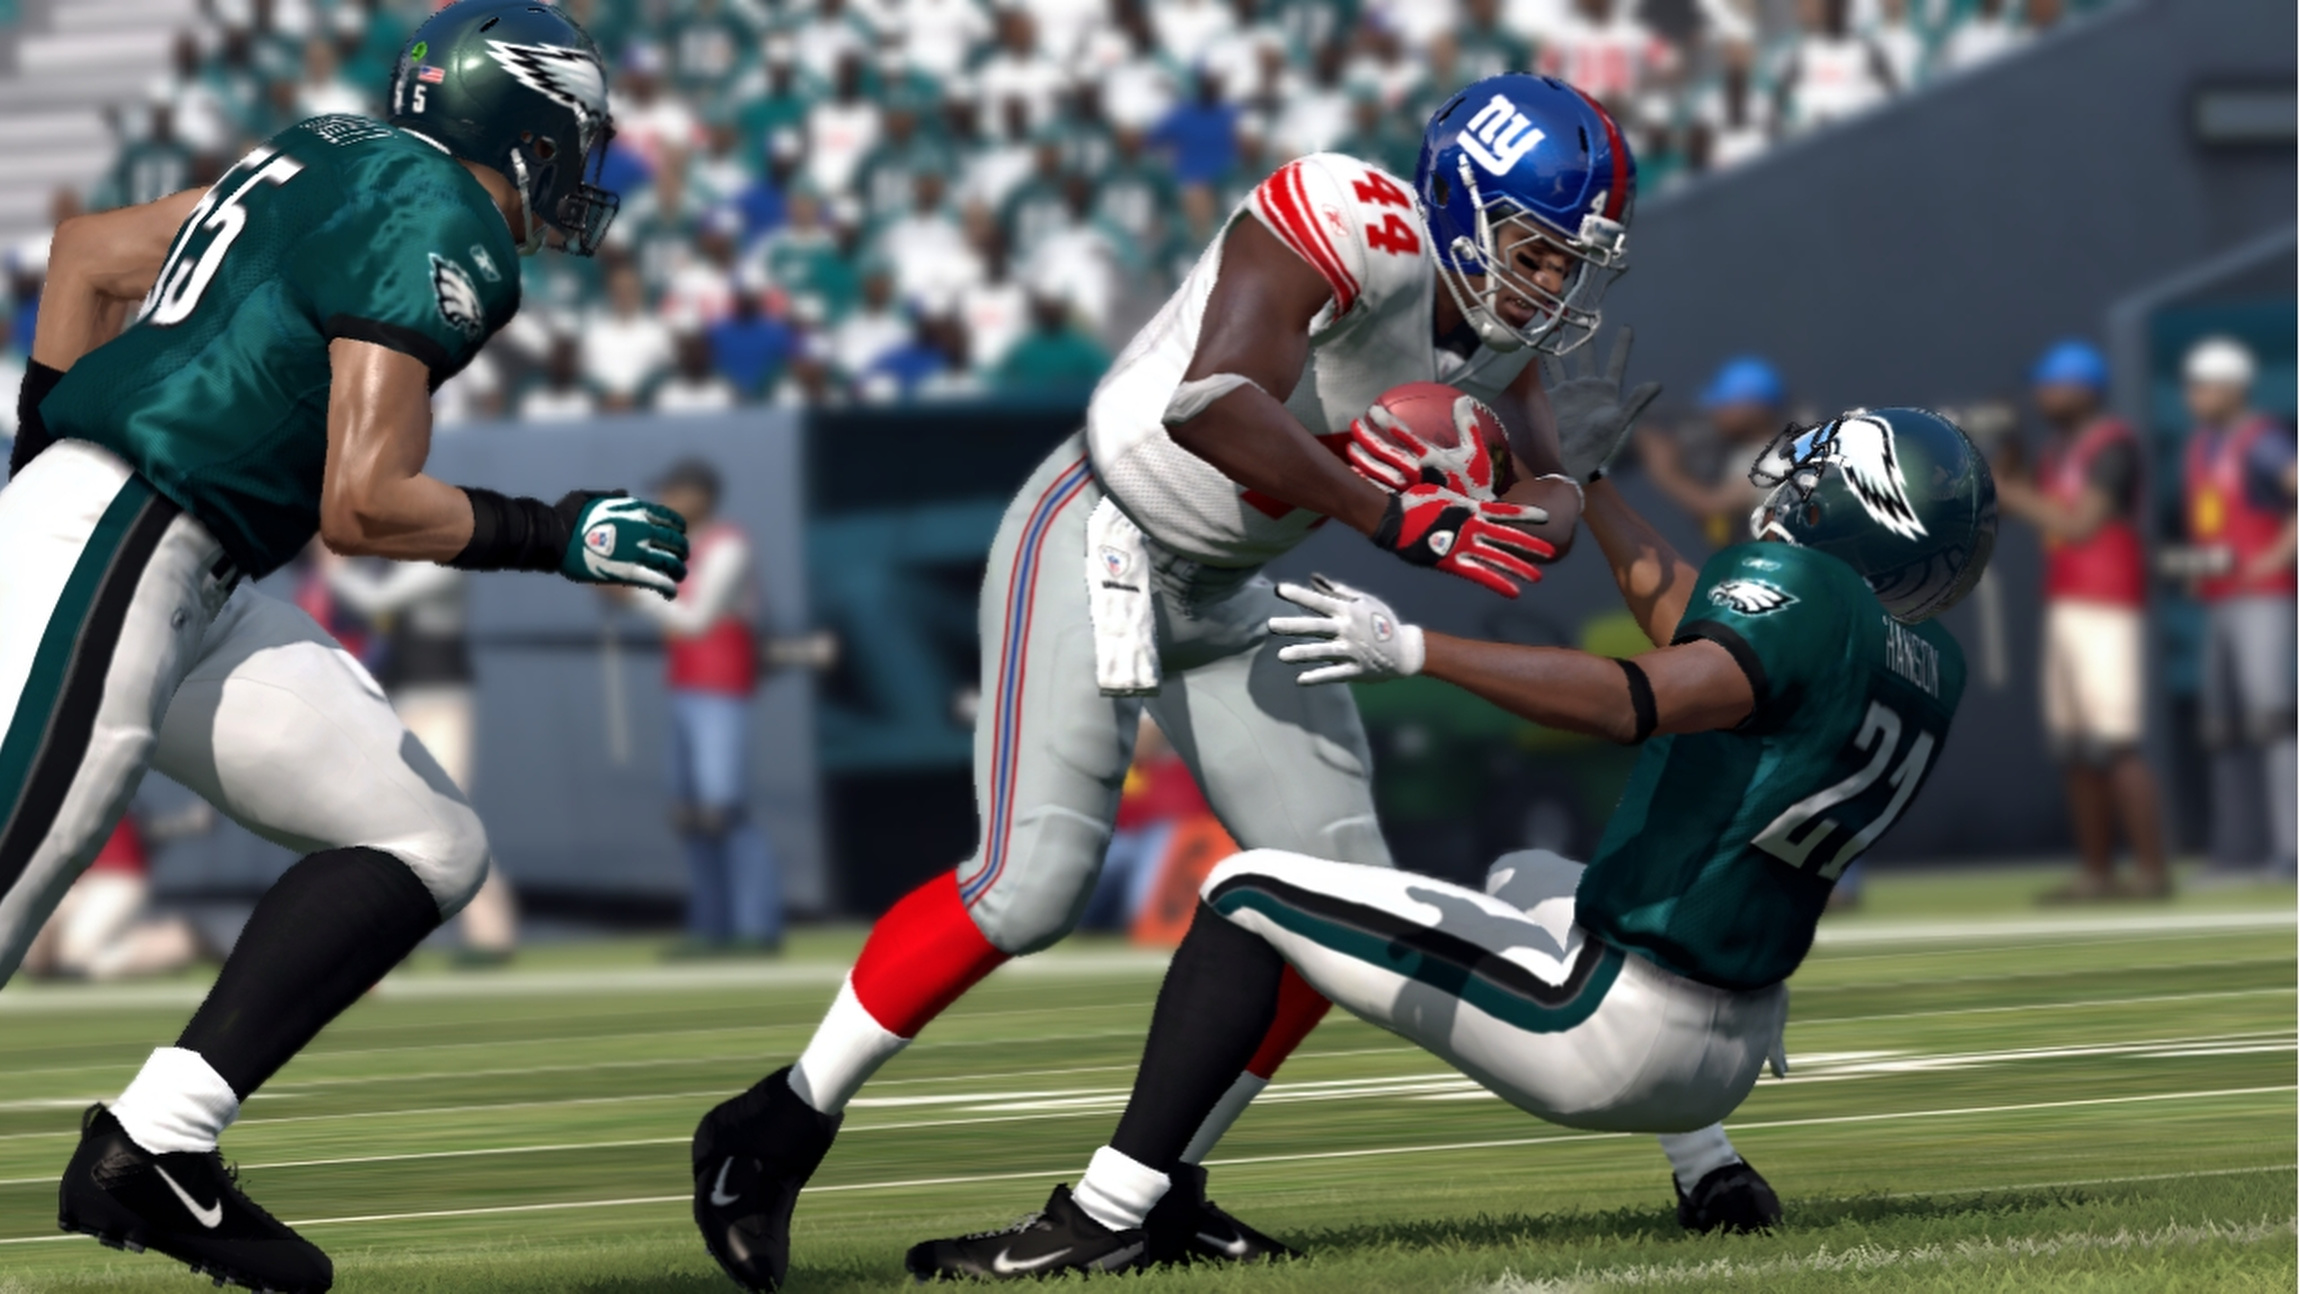 STILL FROM VIDEO GAME 'MADDEN NFL 12' – DioSCG